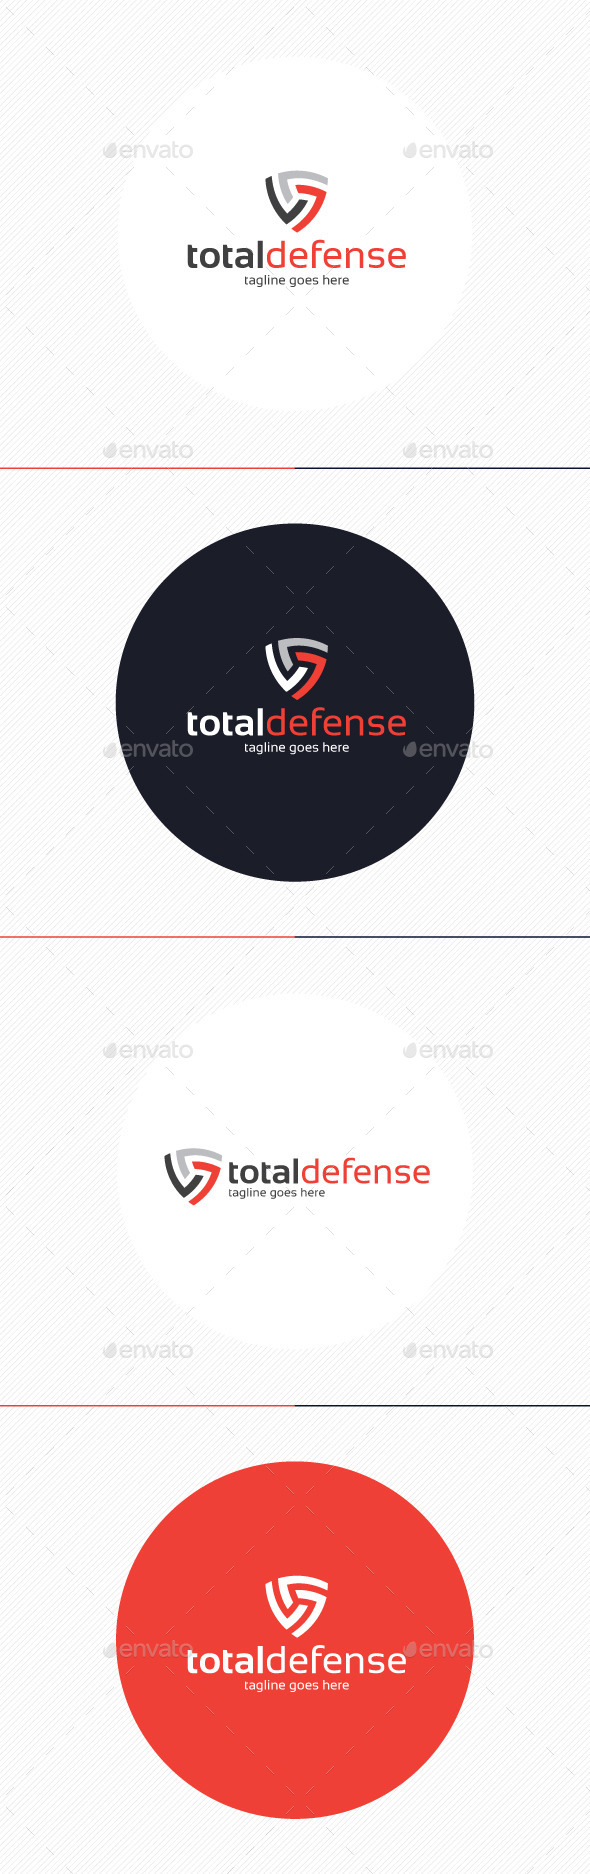 GraphicRiver Total Defense Logo 9208332